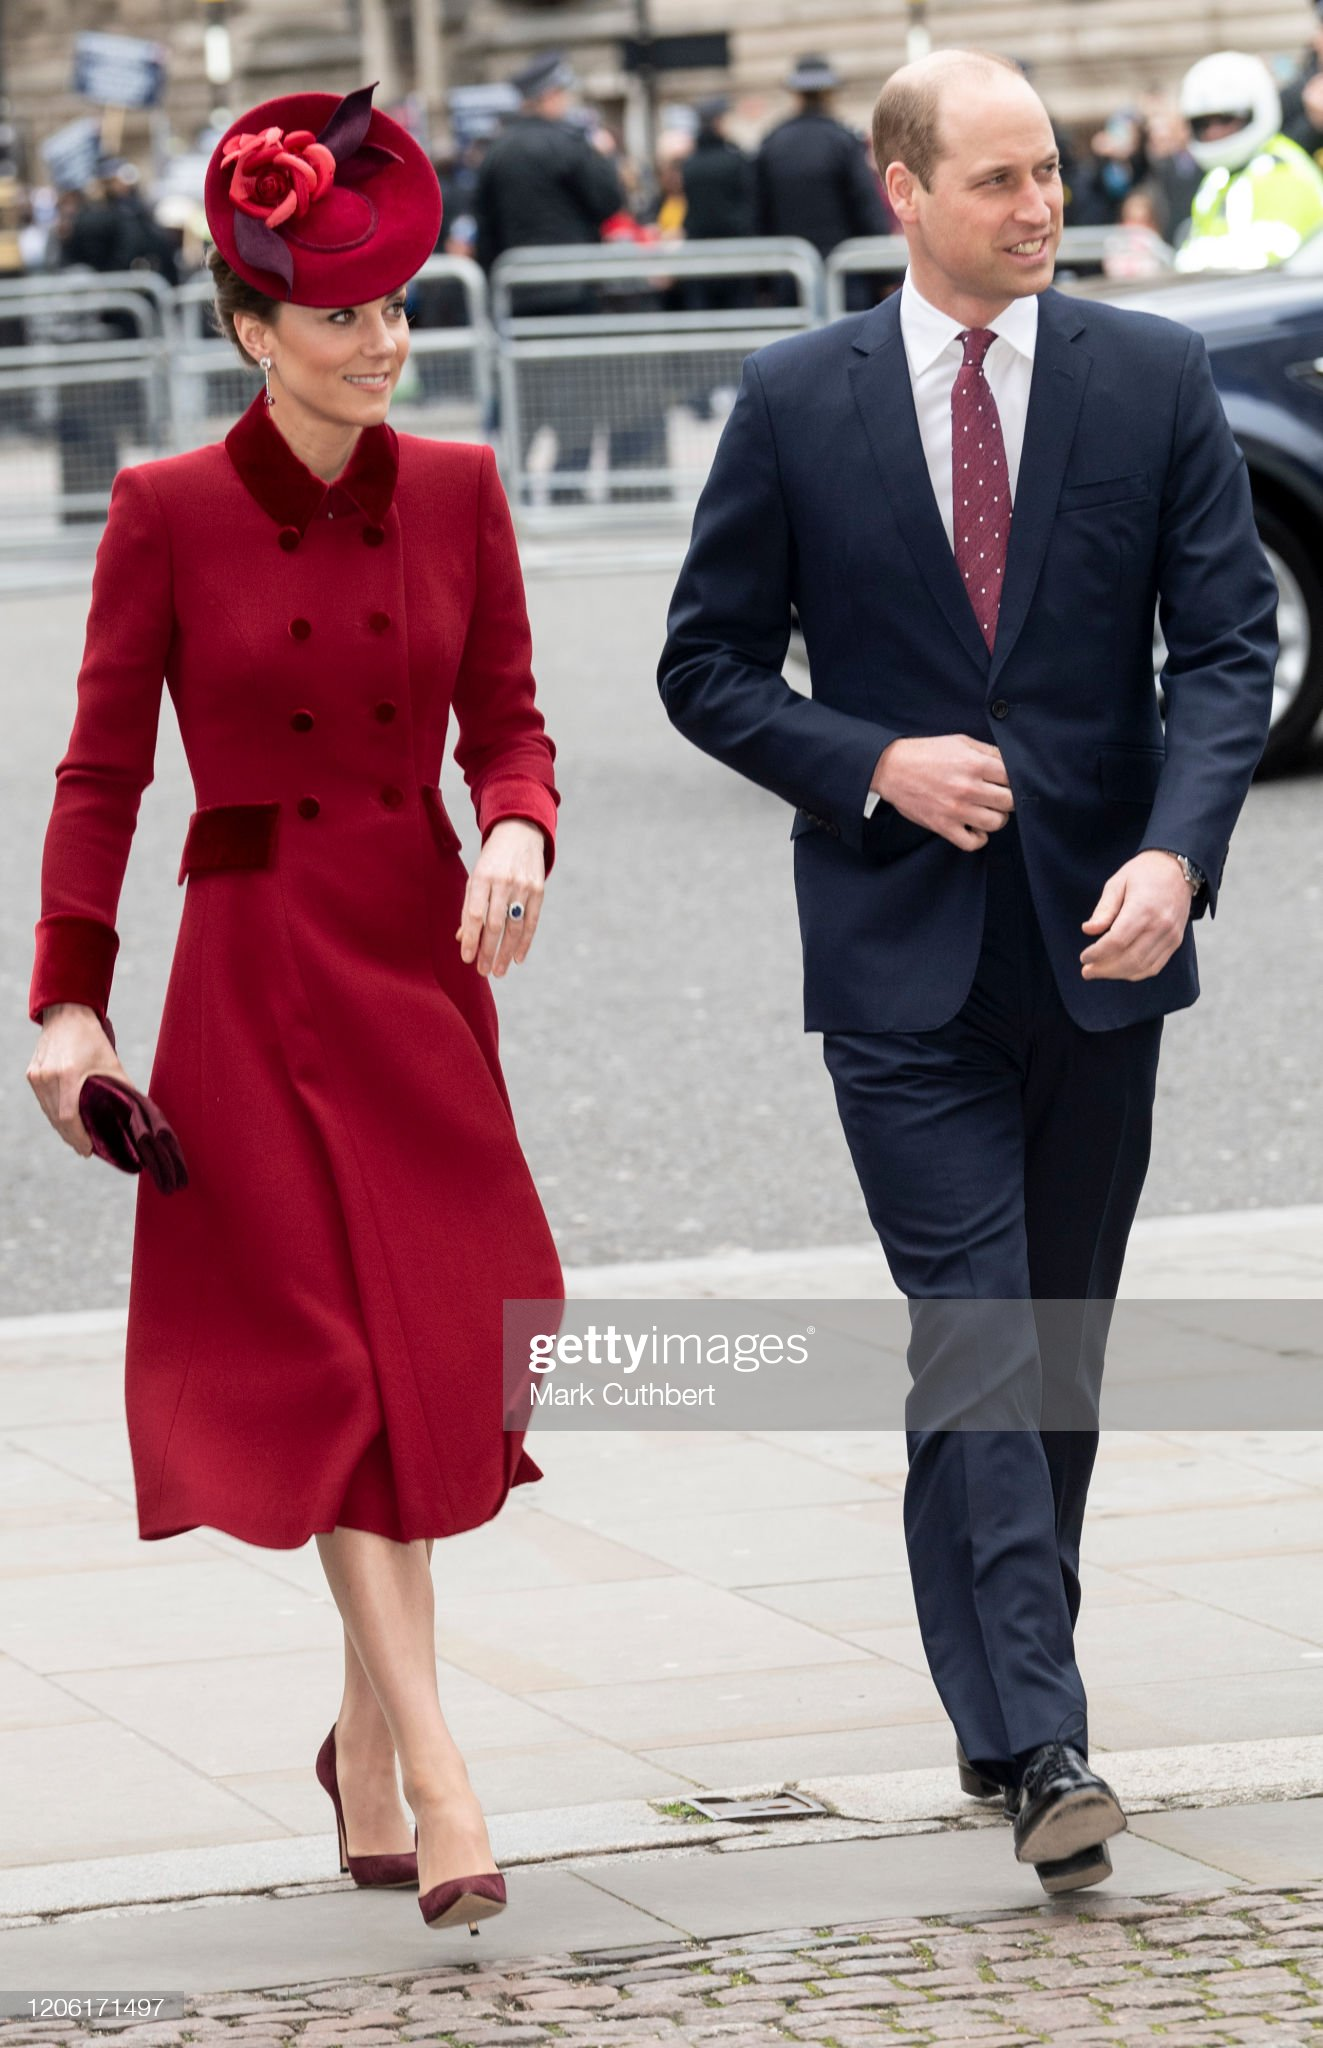 https://media.gettyimages.com/photos/catherine-duchess-of-cambridge-and-prince-william-duke-of-cambridge-picture-id1206171497?s=2048x2048